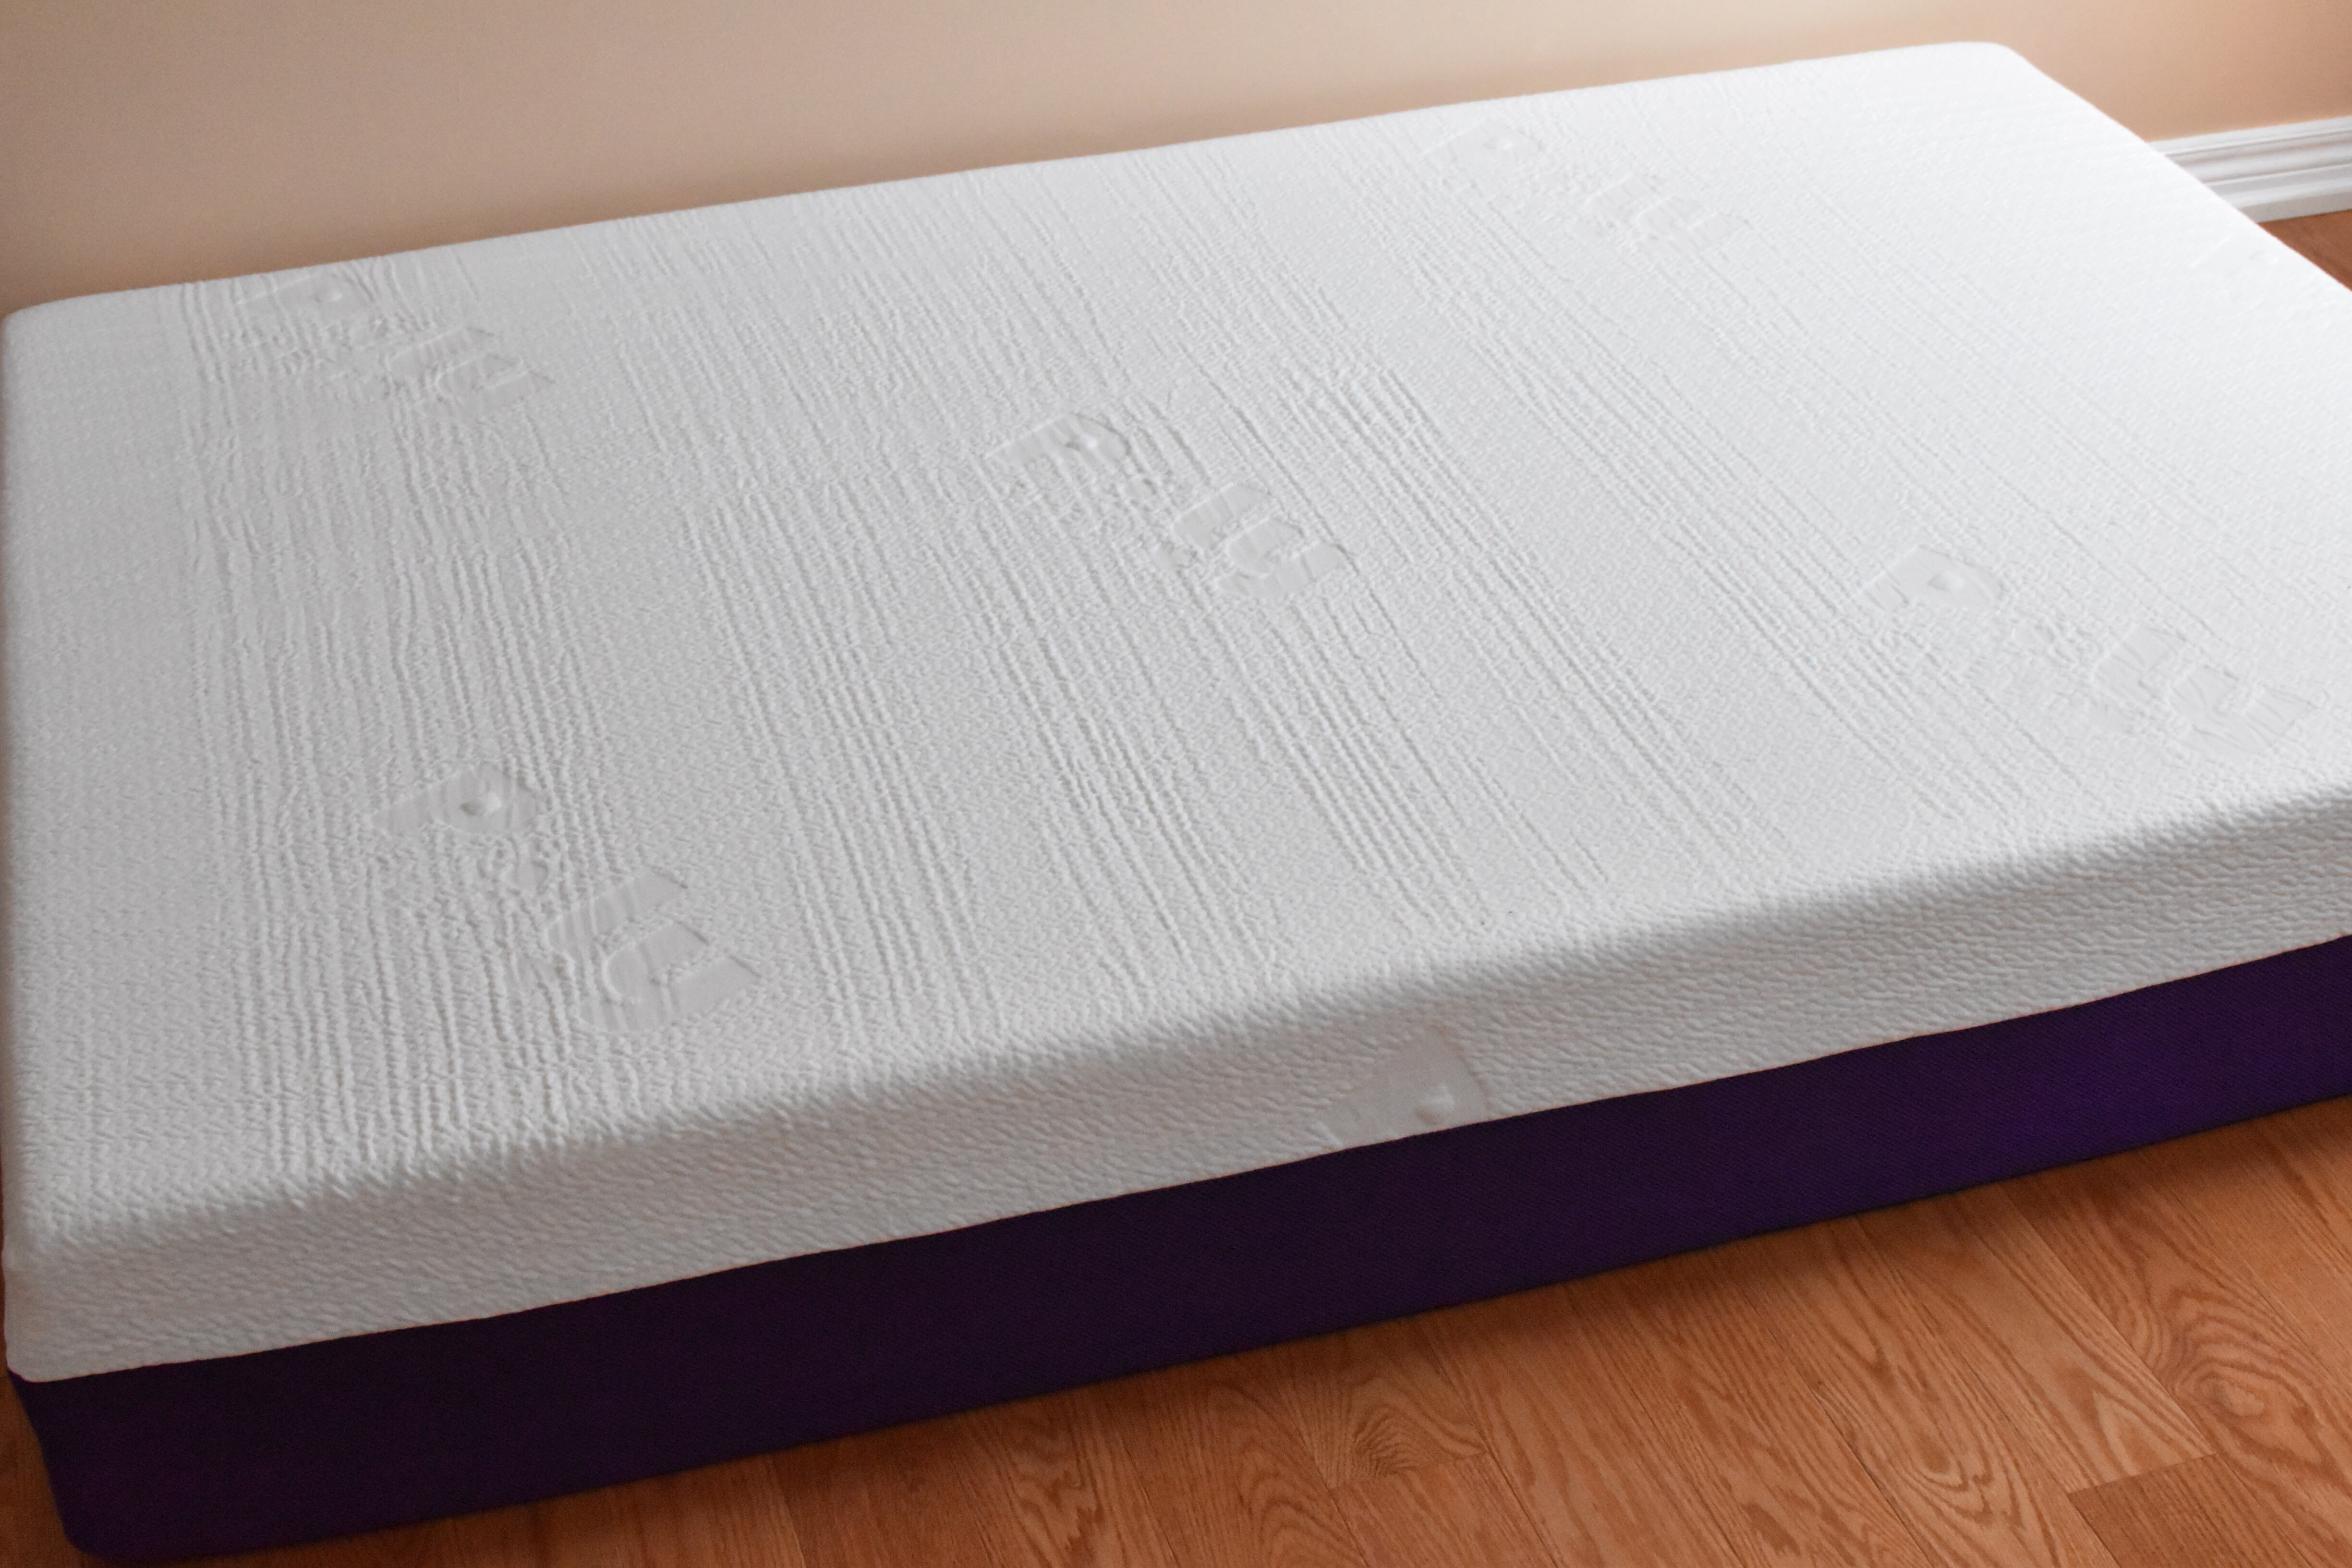 In about 10 minutes, the whole mattress is full expanded. After taking out  the plastic package, the mattress is ready for your beauty sleep!